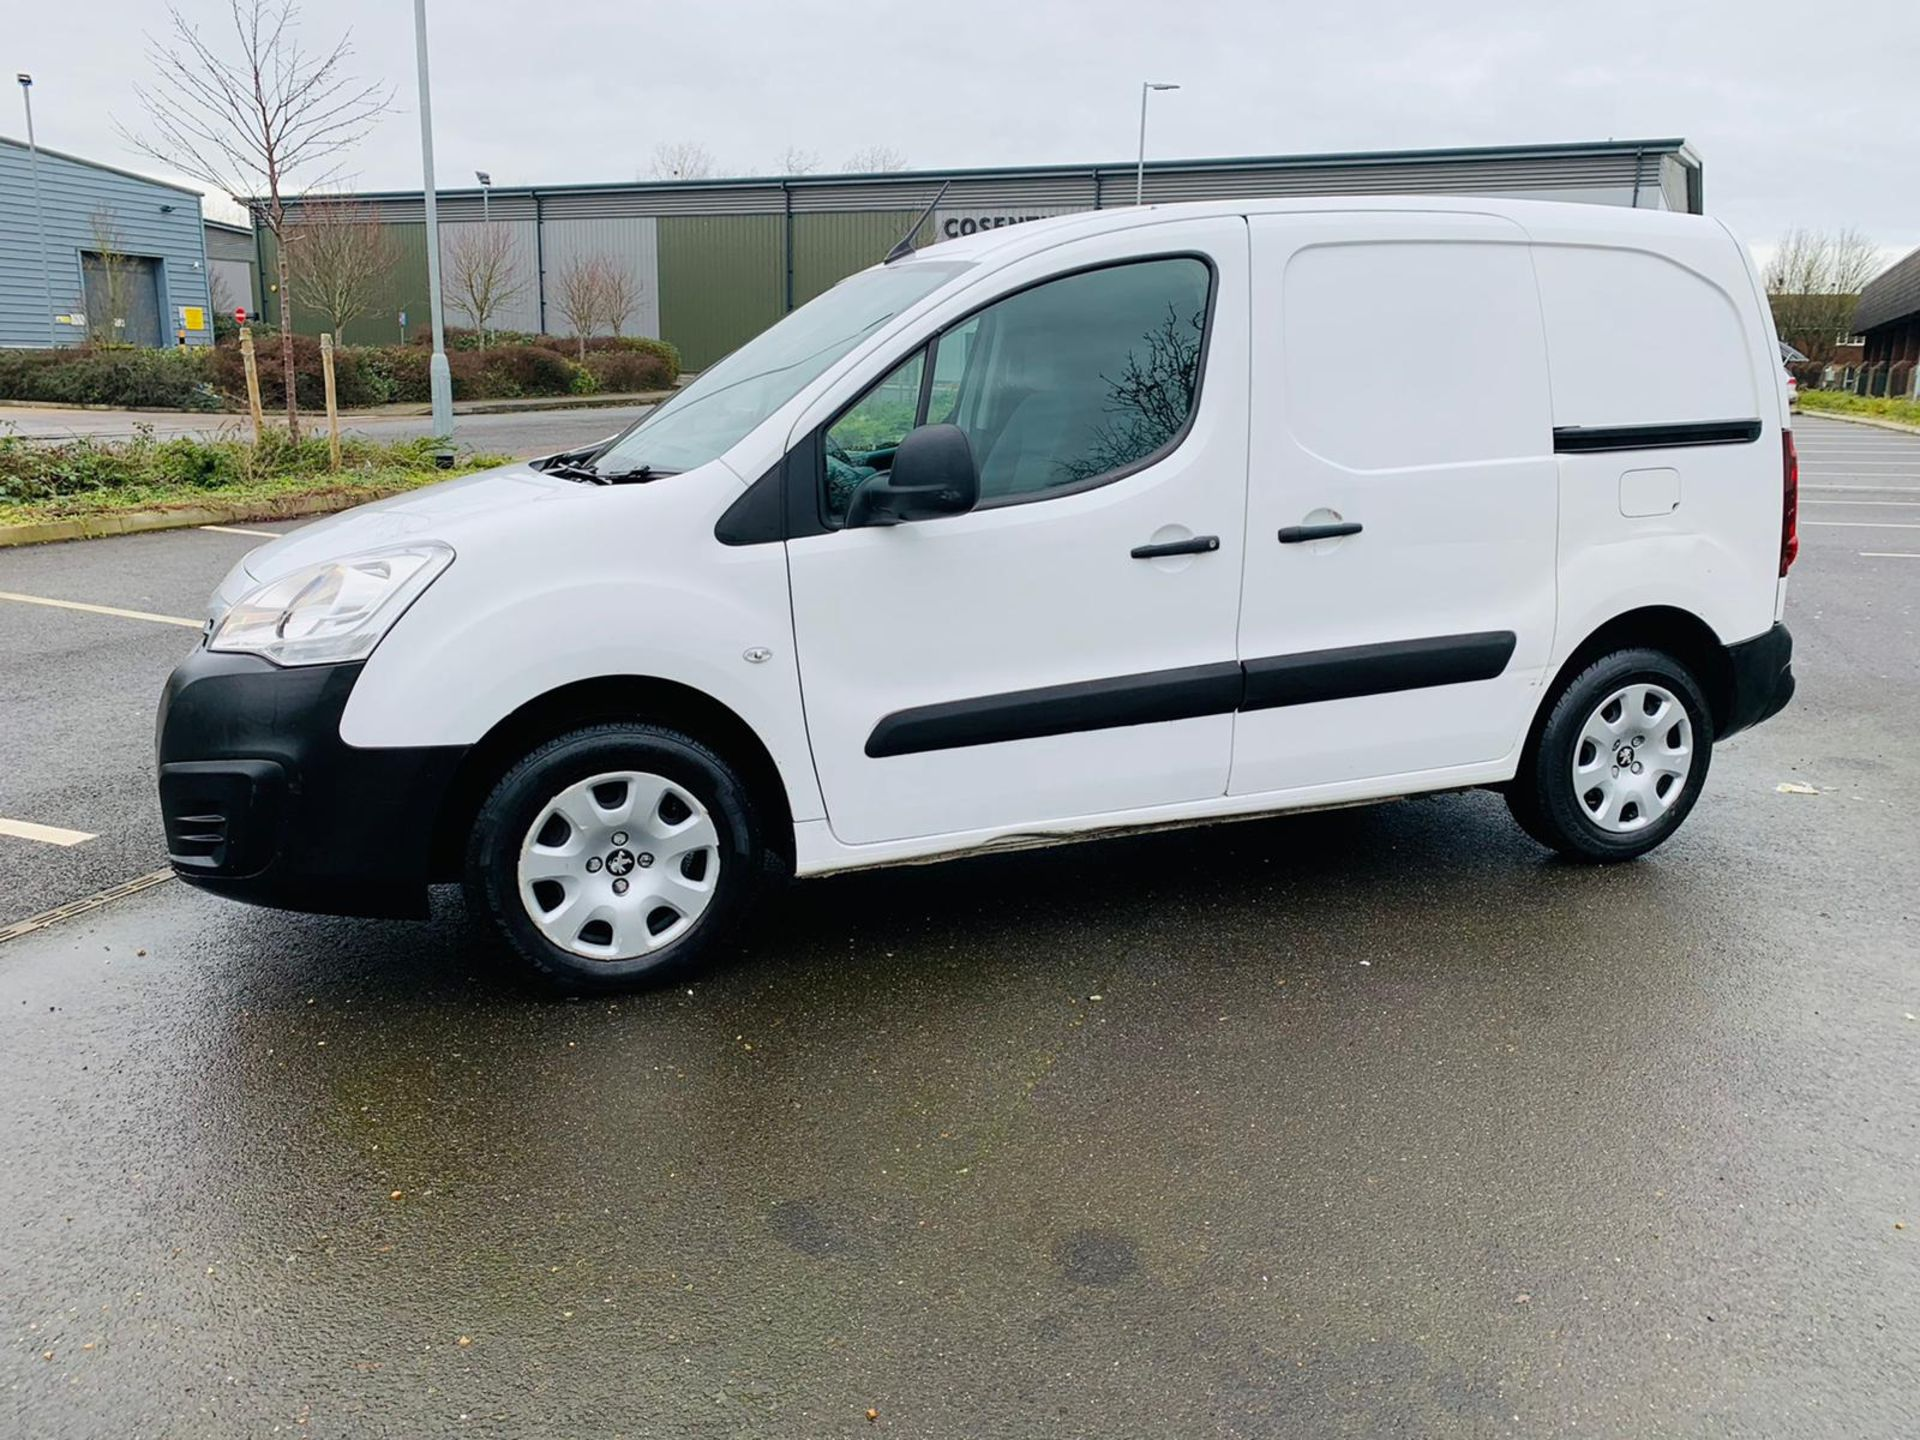 (RESERVE MET) Peugeot Partner 1.6 HDI Professional - 2017 Model - Air Con - Service History - Image 3 of 22